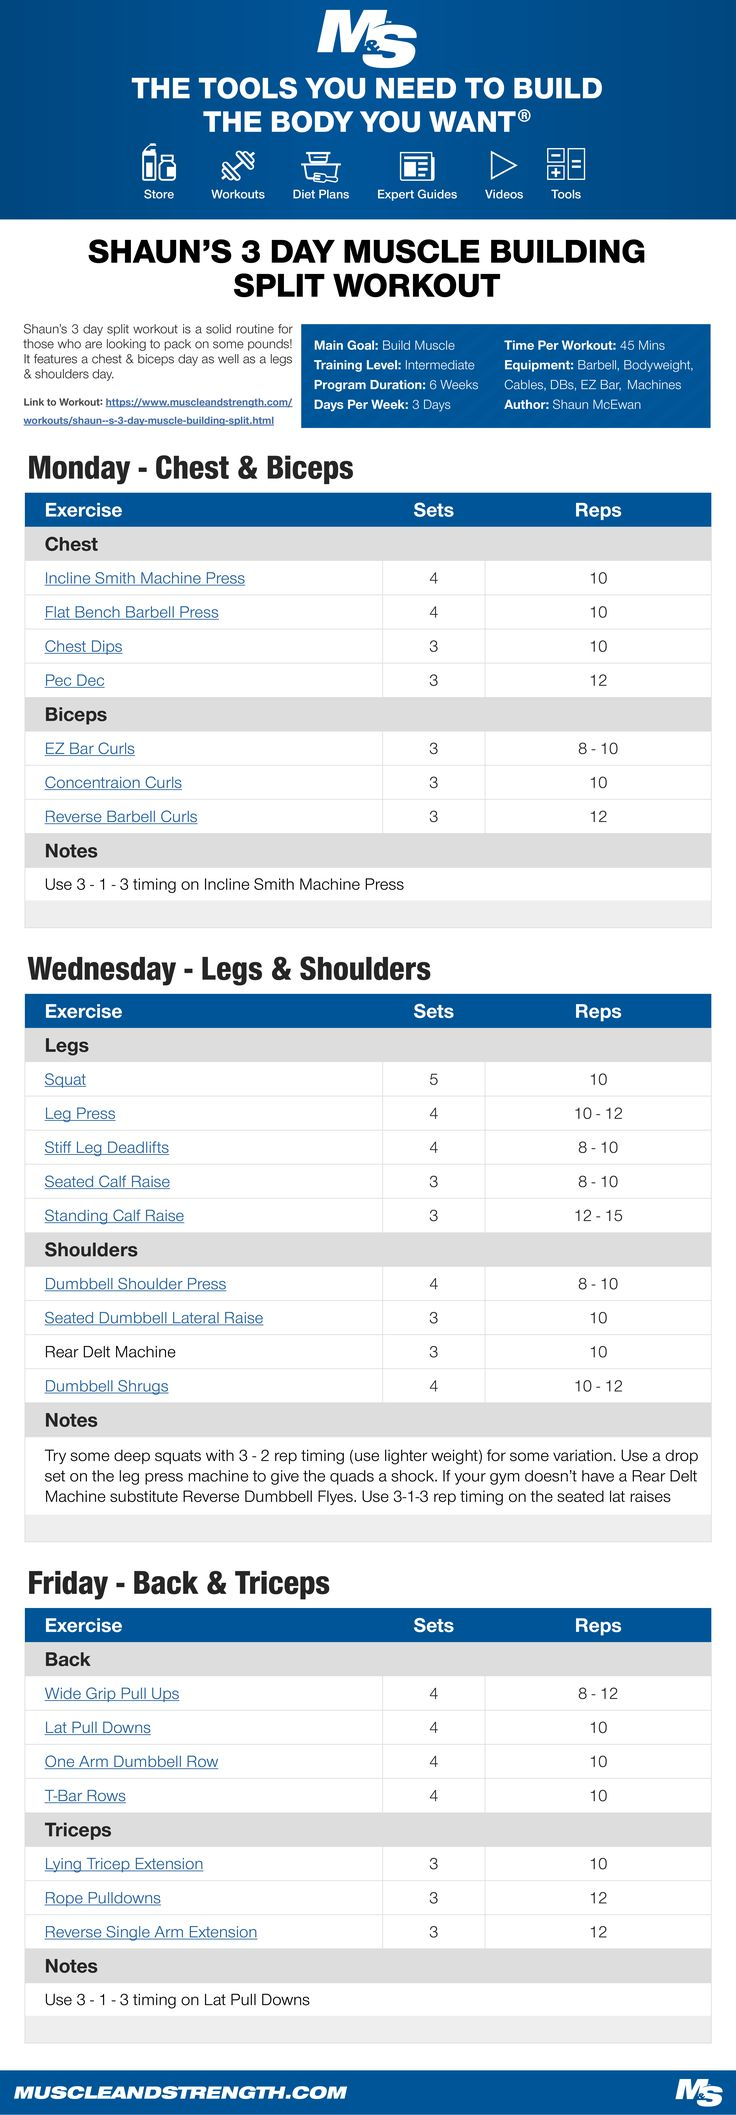 Shaun's 3 day split workout is a solid routine for those who are looking to pack on some pounds! It features a chest & biceps day as well as a legs & shoulders day.